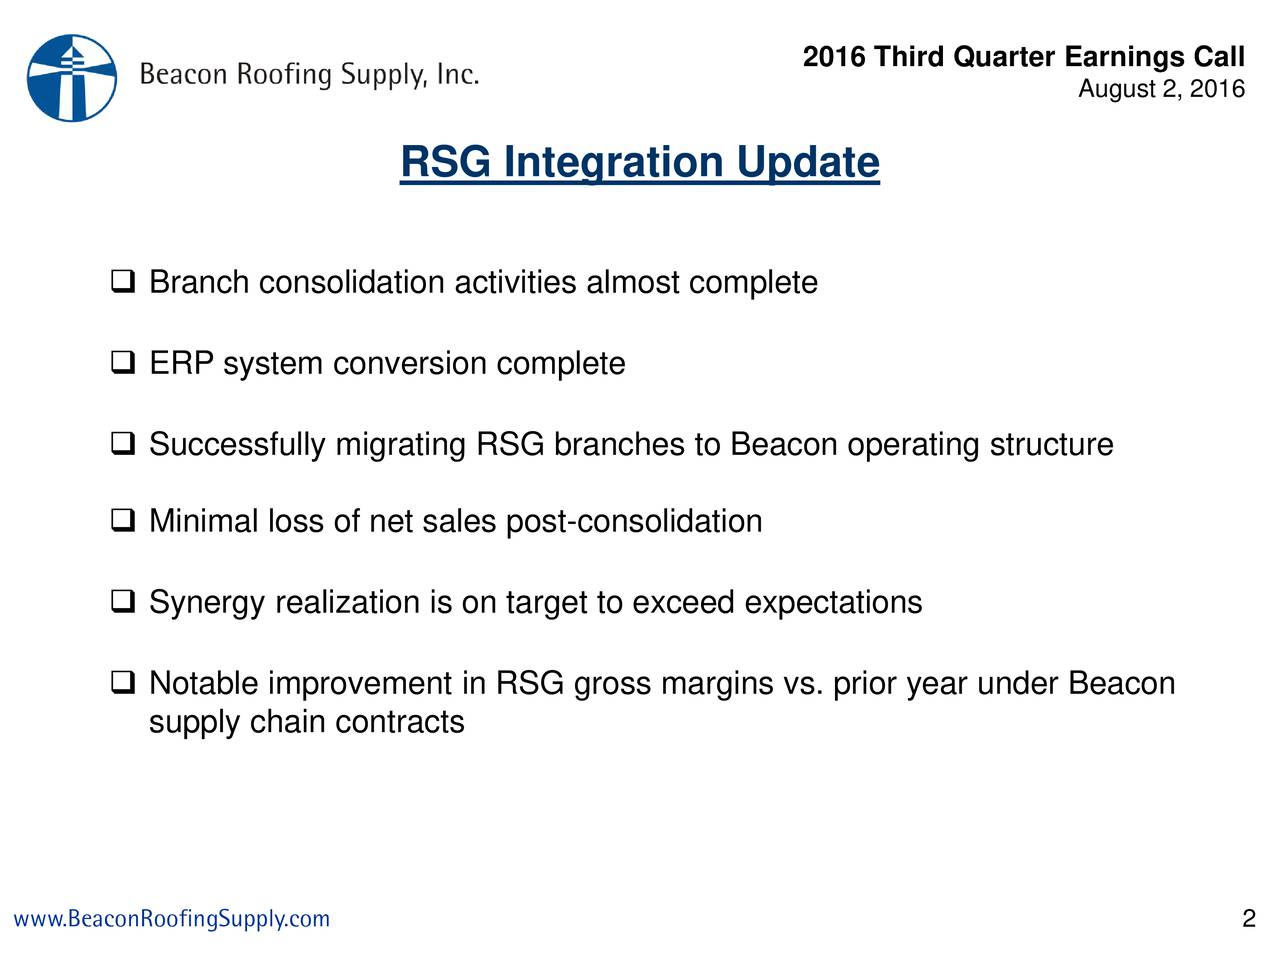 August 2, 2016 RSG Integration Update Branch consolidation activities almost complete ERP system conversion complete Successfully migrating RSG branches to Beacon operating structure Minimal loss of net sales post-consolidation of Sales Synergy realization is on target to exceed expectations Notable improvement in RSG gross margins vs. prior year under Beacon supply chain contracts www.BeaconRoofingSupply.com 2